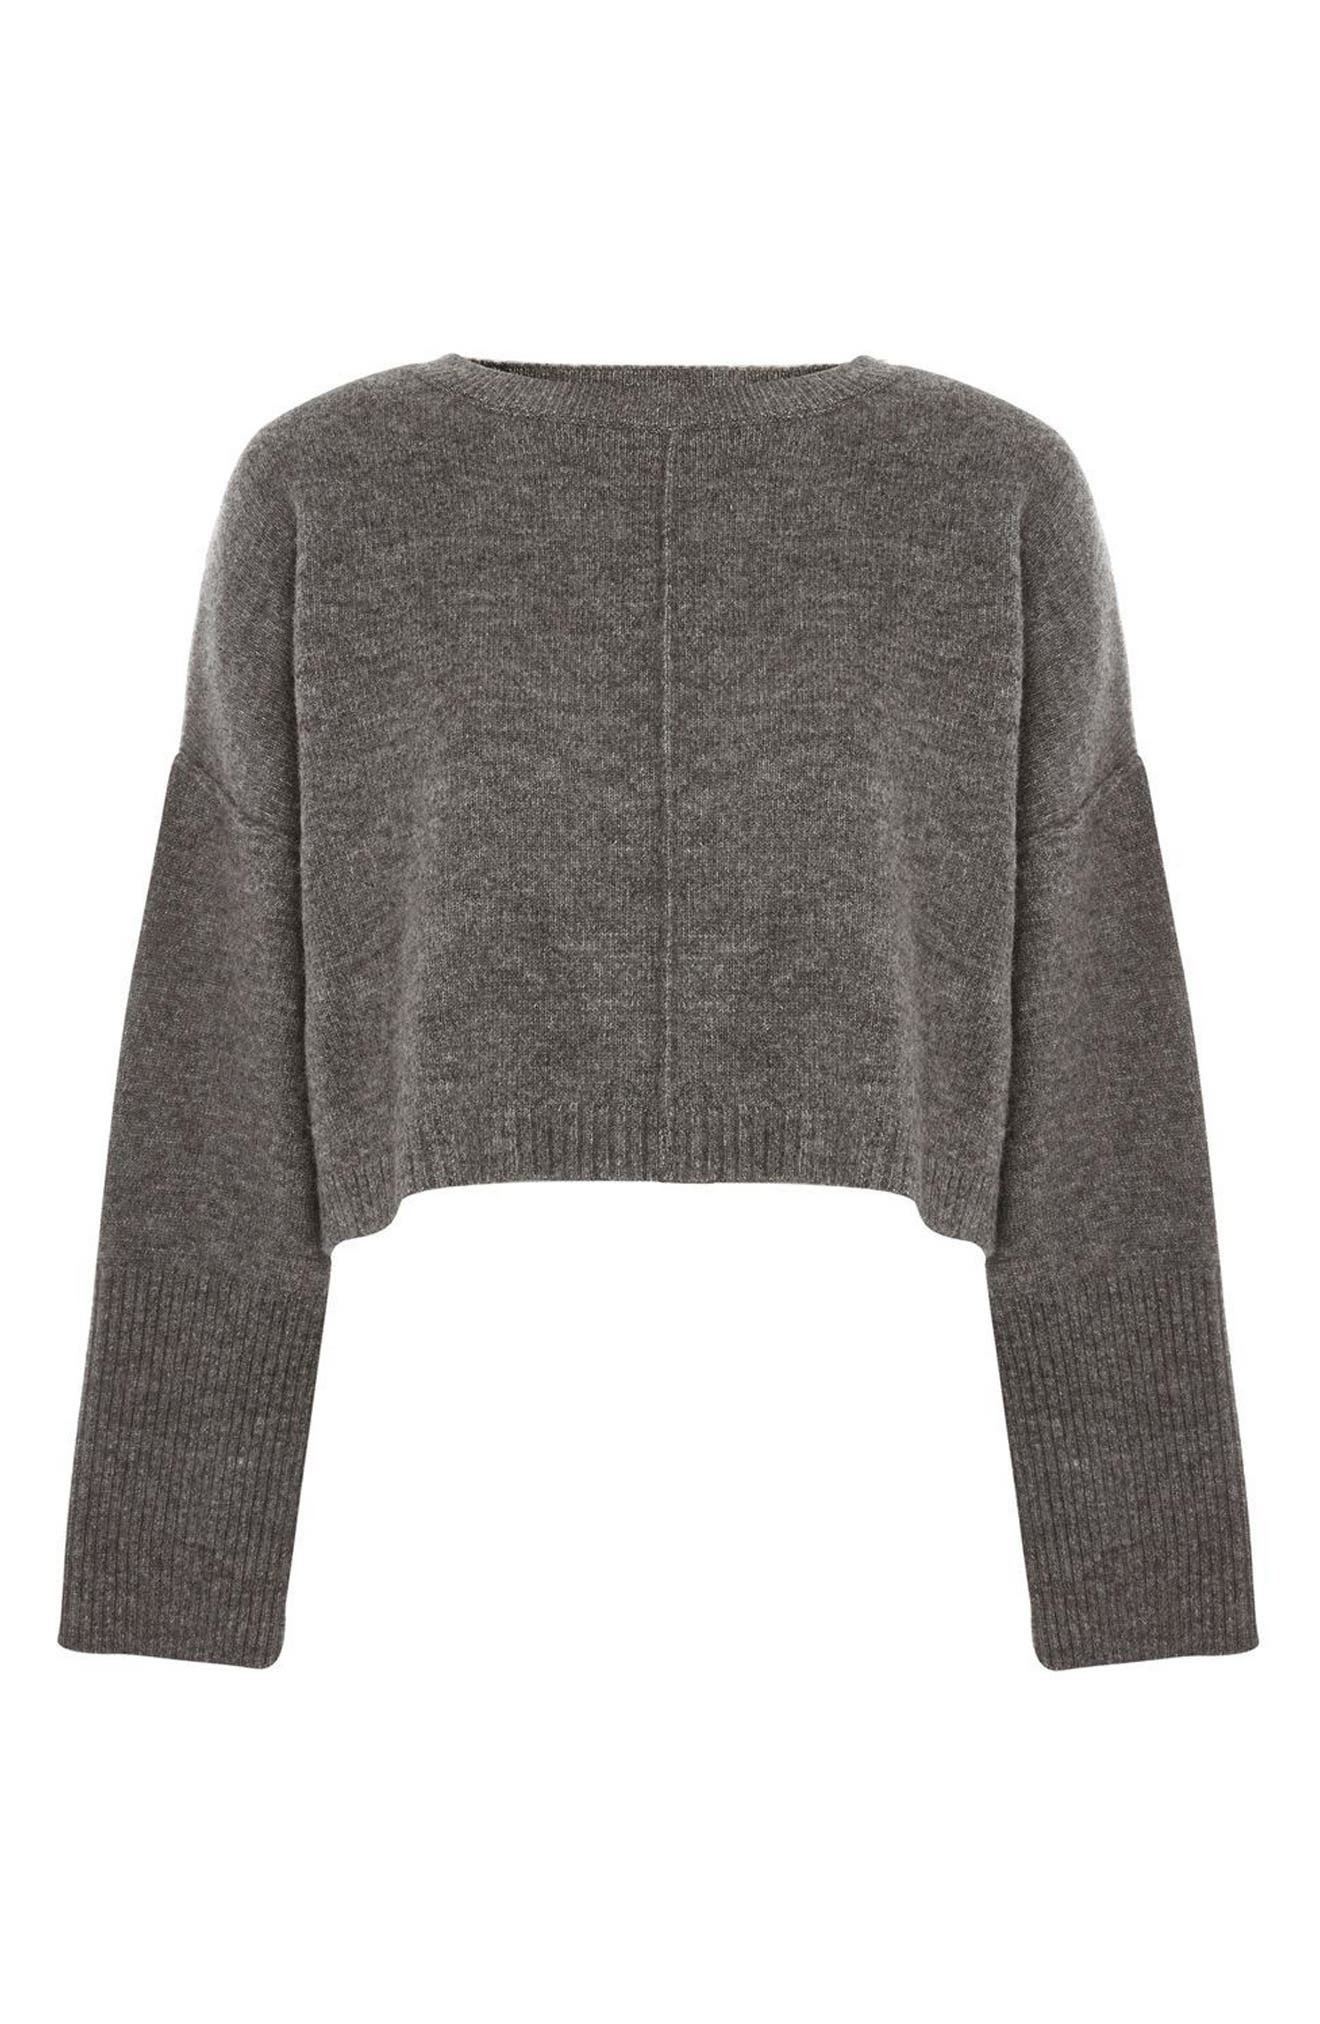 Wide Sleeve Crop Sweater,                             Alternate thumbnail 3, color,                             021